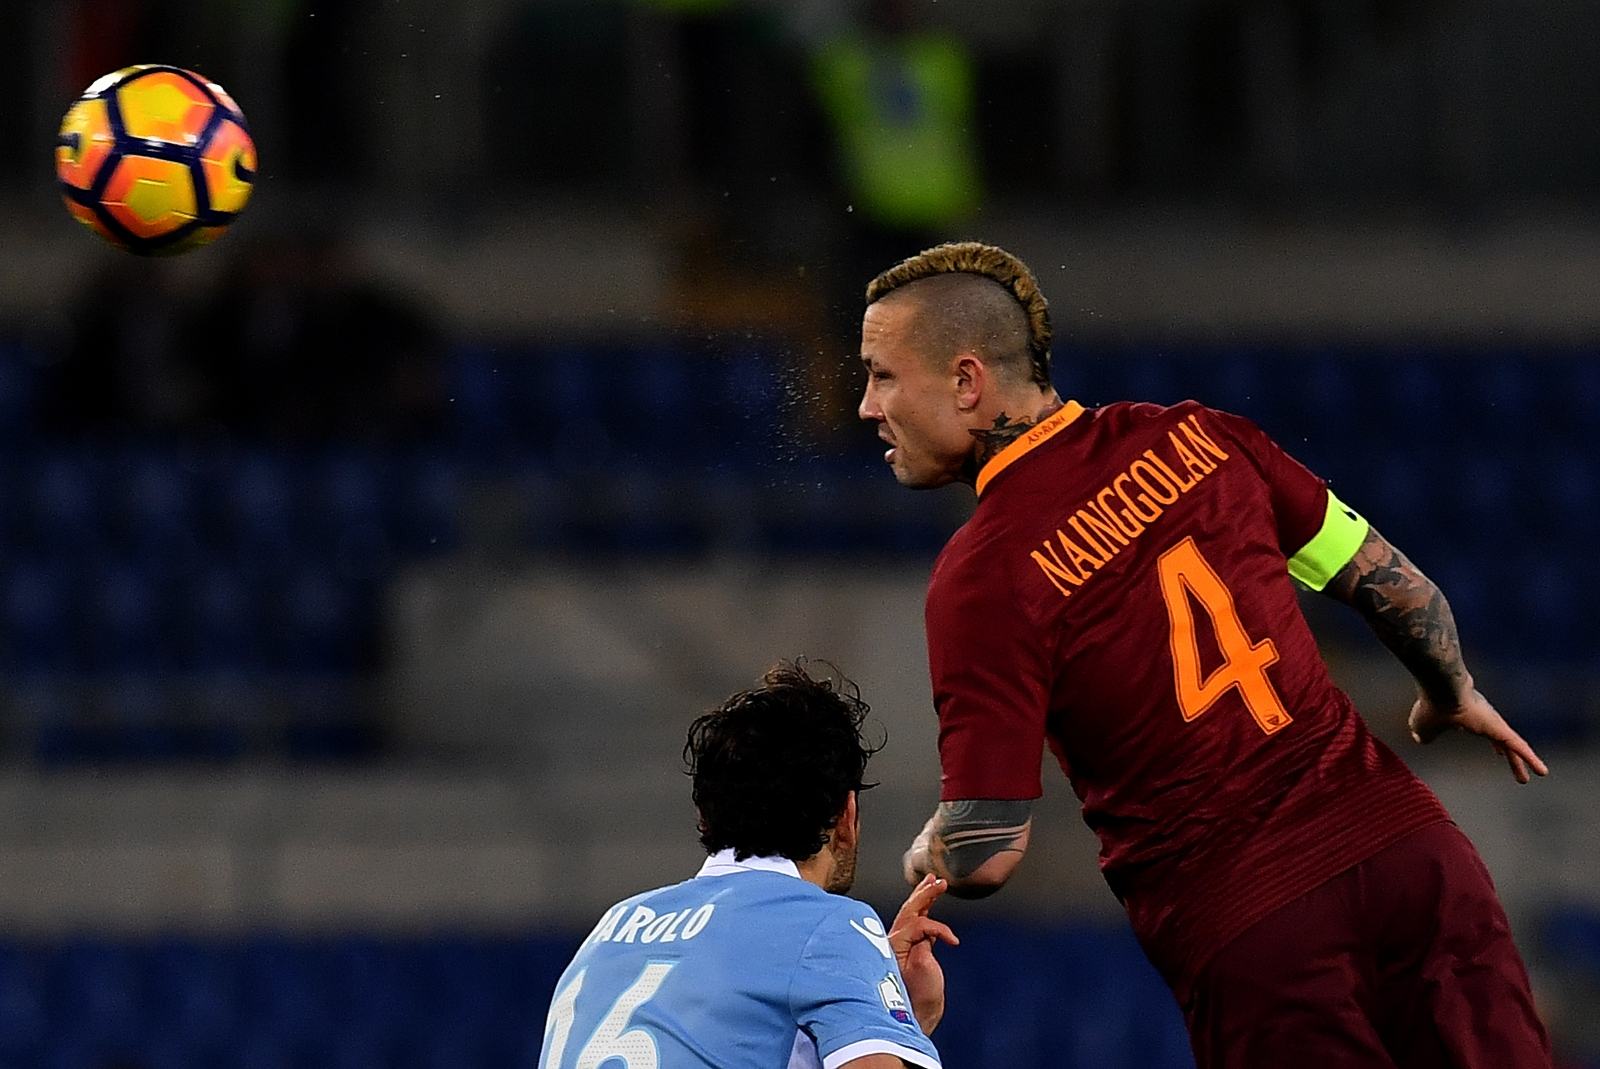 Radja Nainggolan signs new four-year deal at Roma